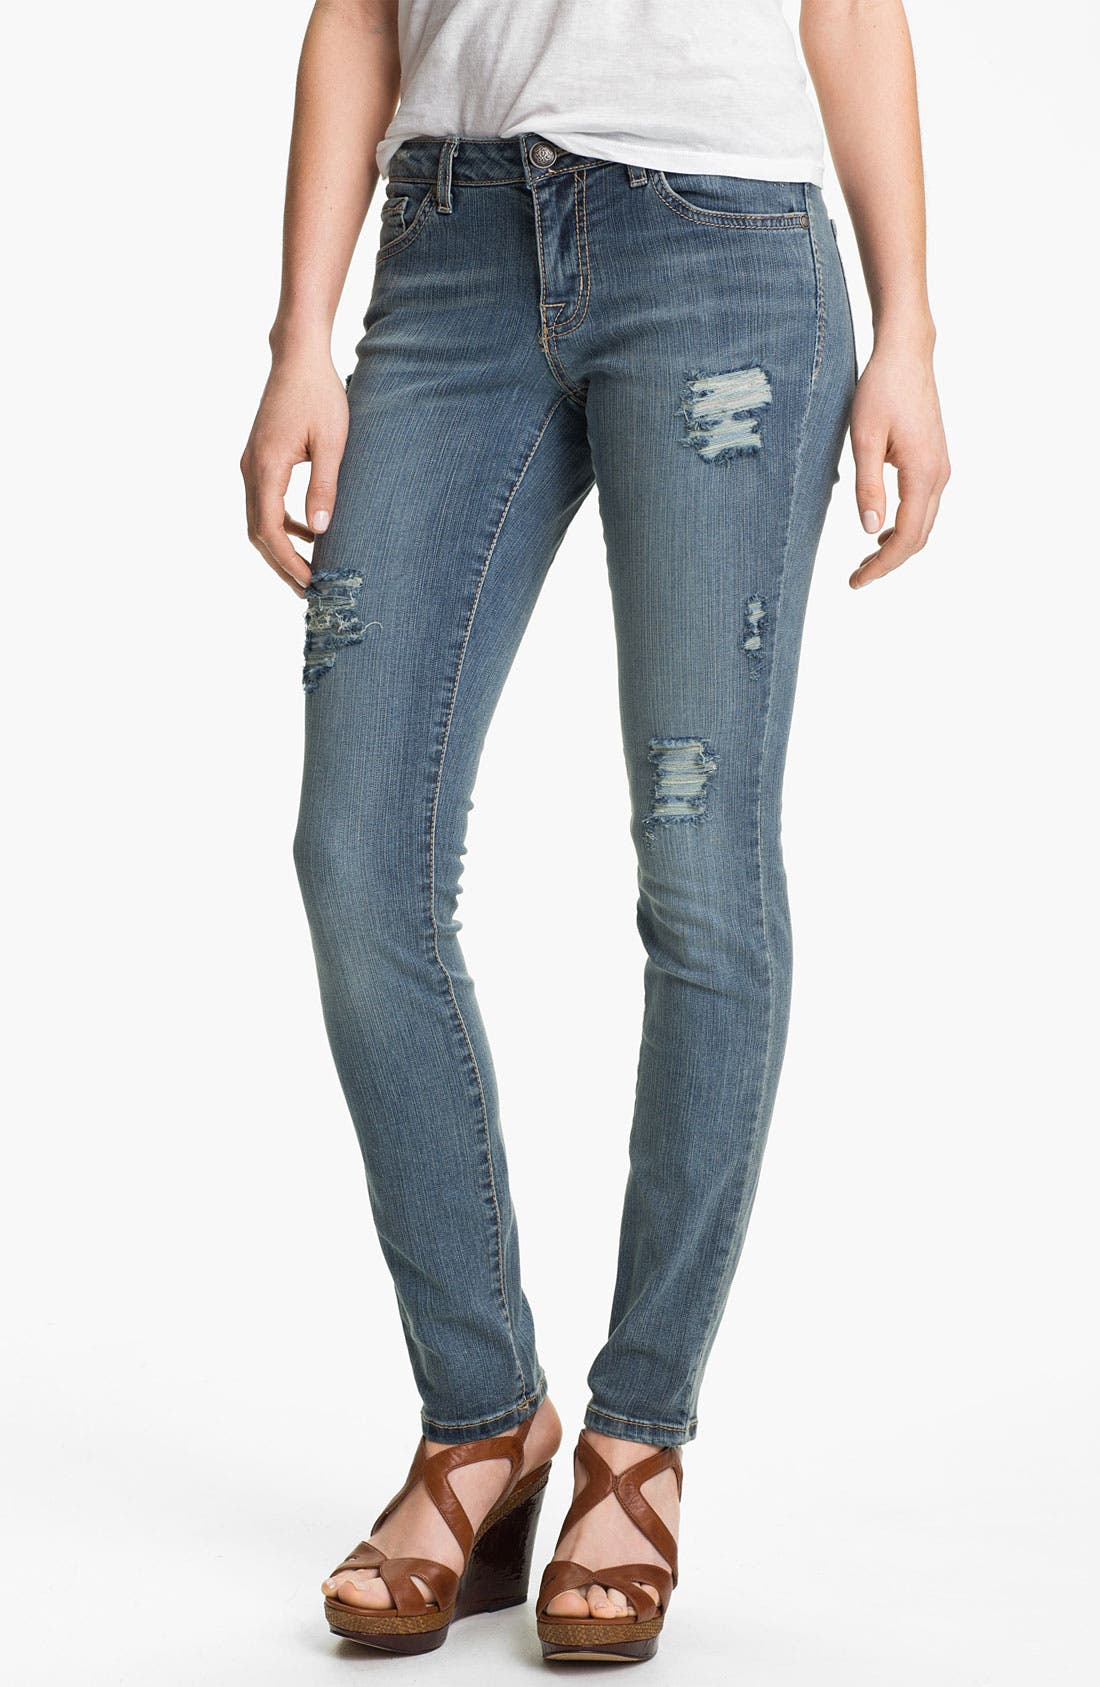 Alternate Image 2  - Jessica Simpson 'Kiss Me' Deconstructed Skinny Jeans (District) (Online Only)